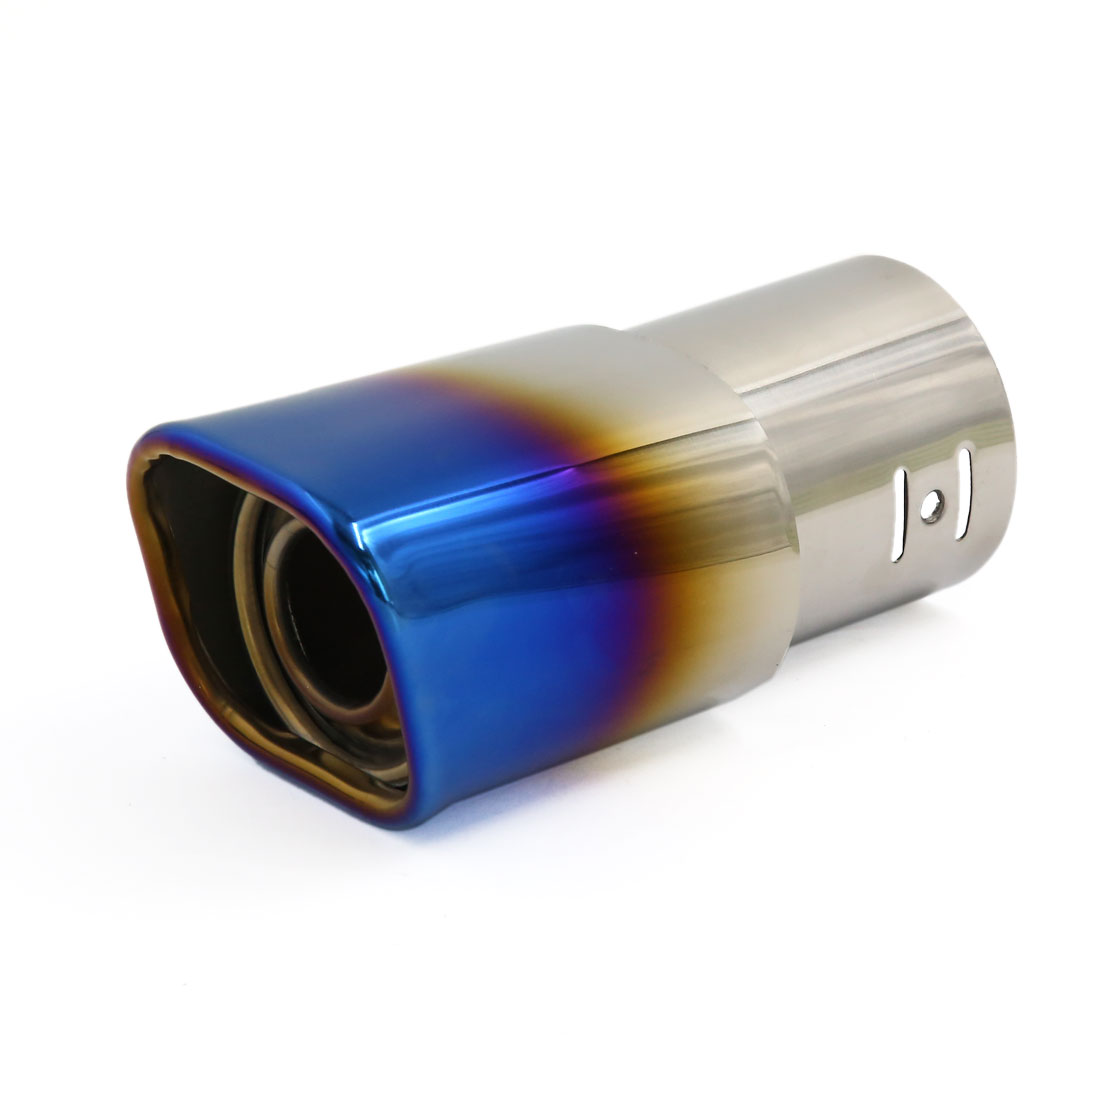 Titanium Blue Modified Silencer Exhaust Muffler Tip Tail for Vehicle Car